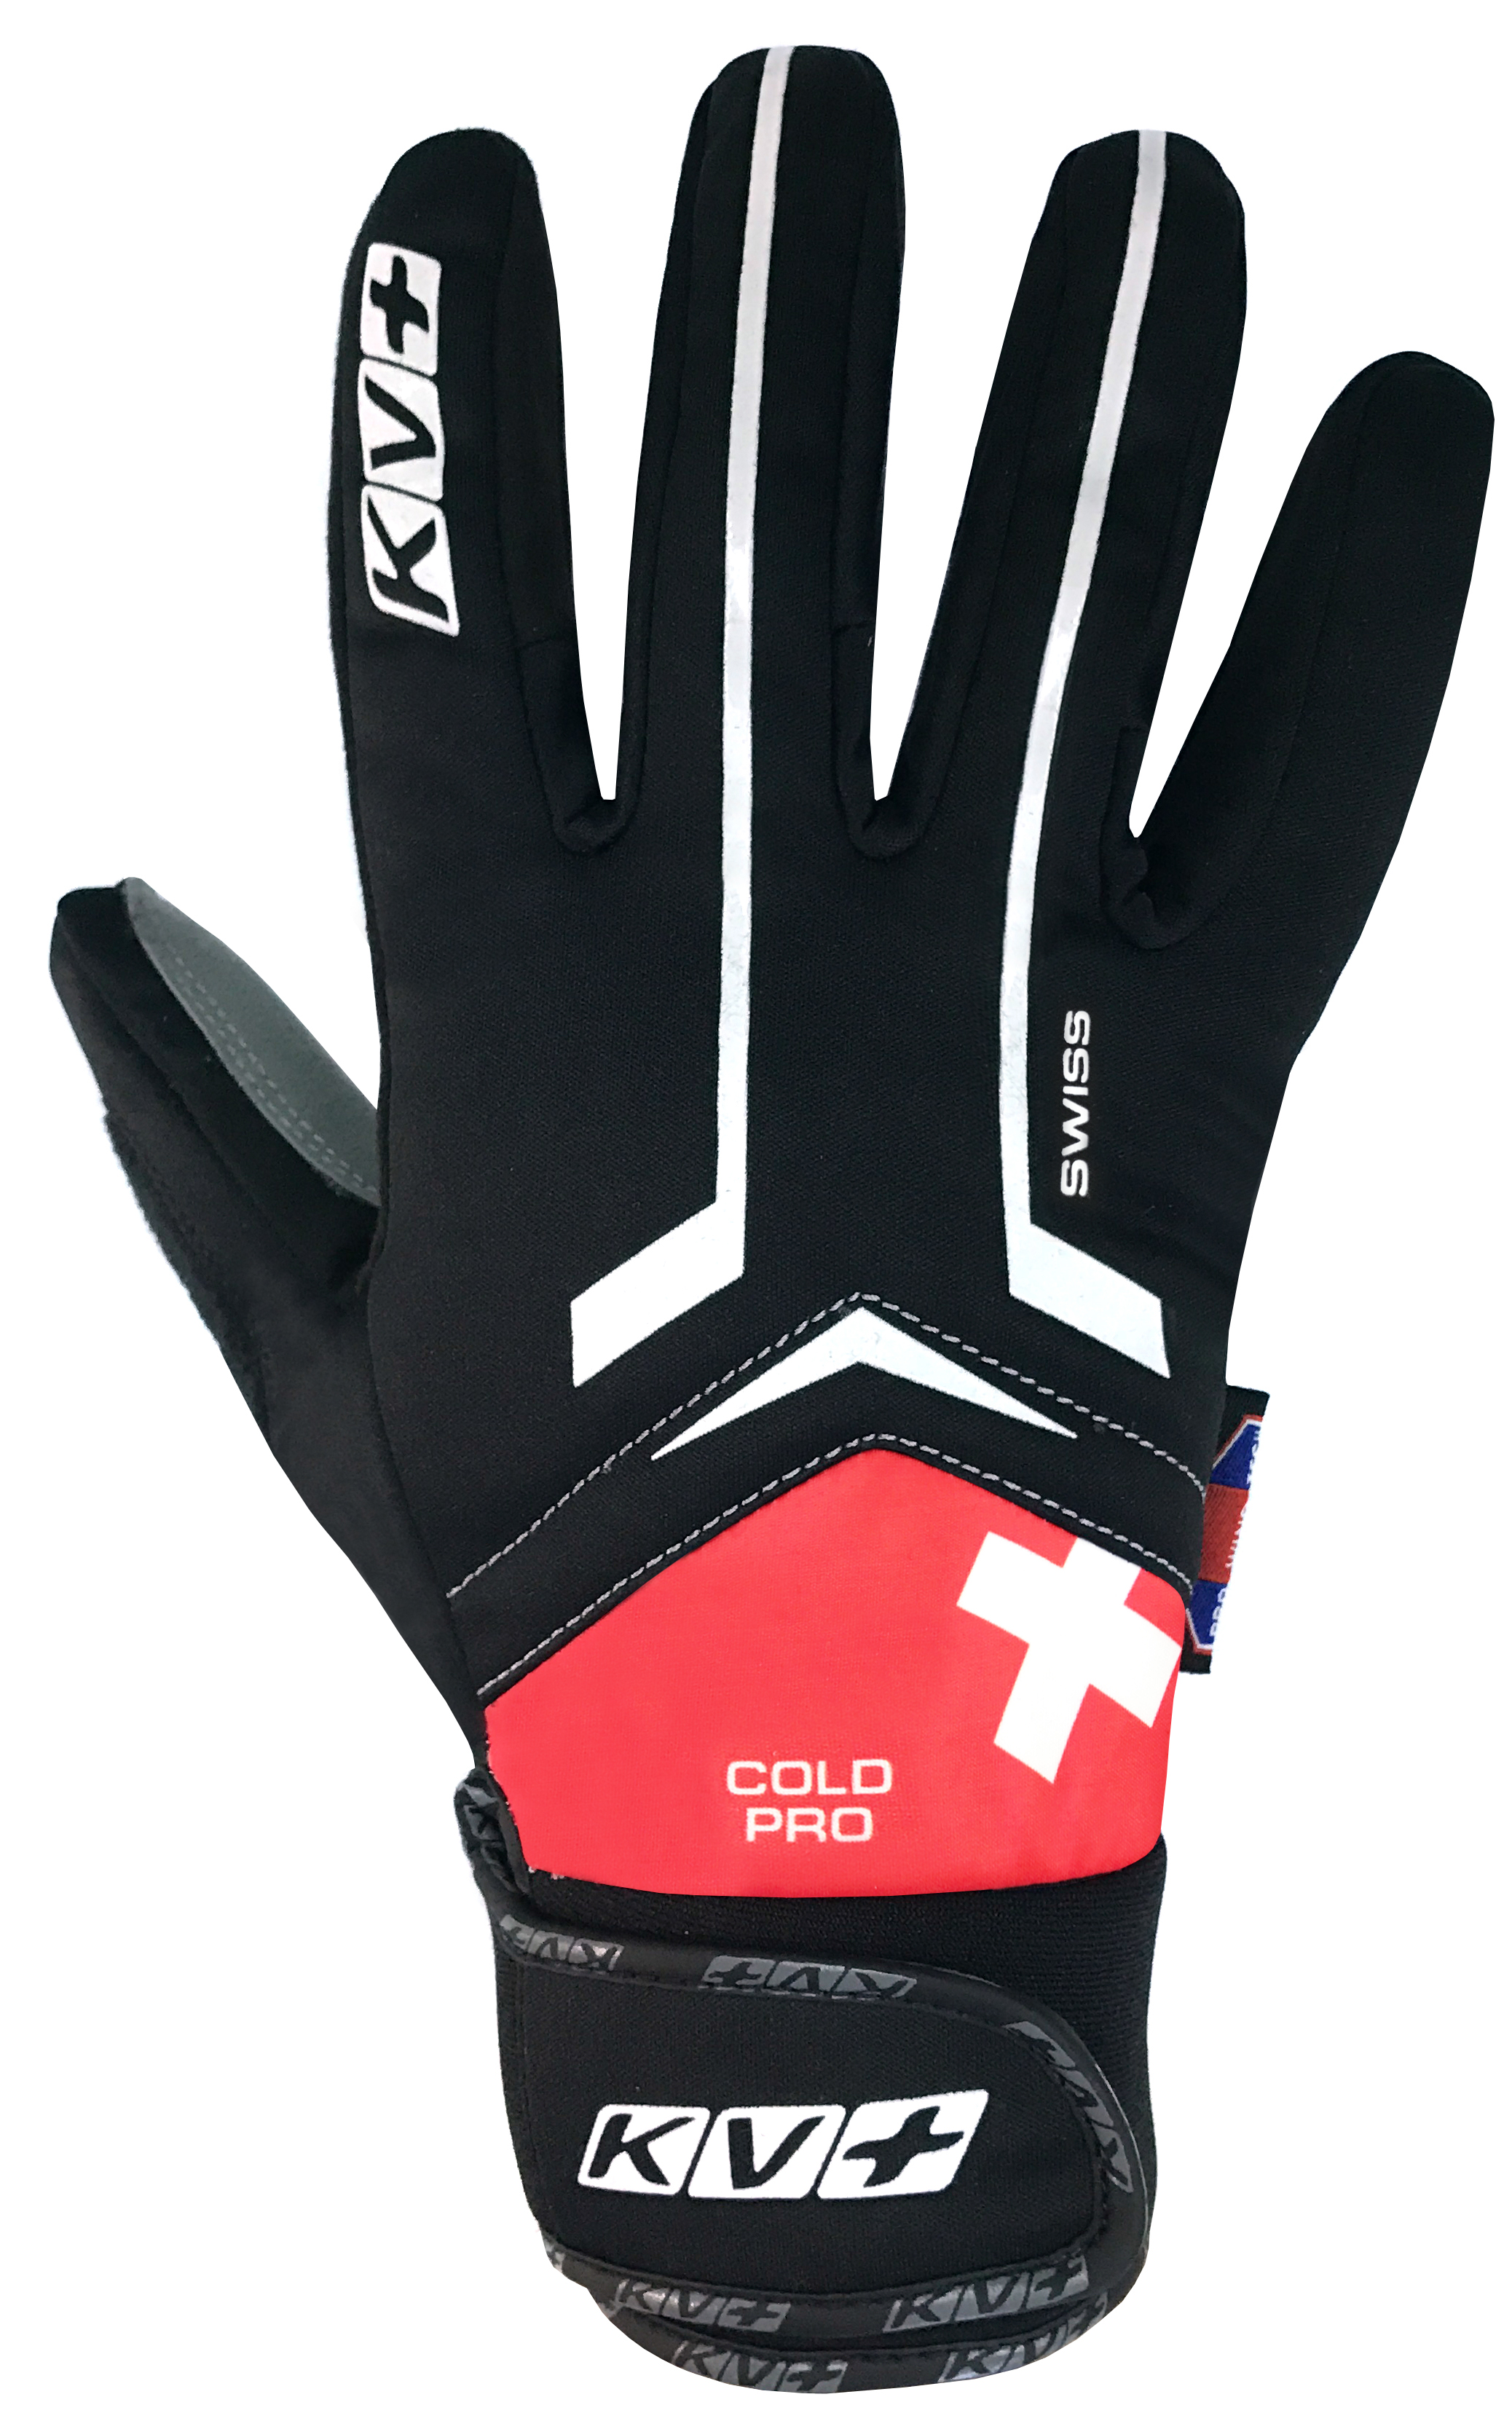 detail KV+ XC COLD PRO GLOVES WIND TECH SWISS – black/red 7G05-S